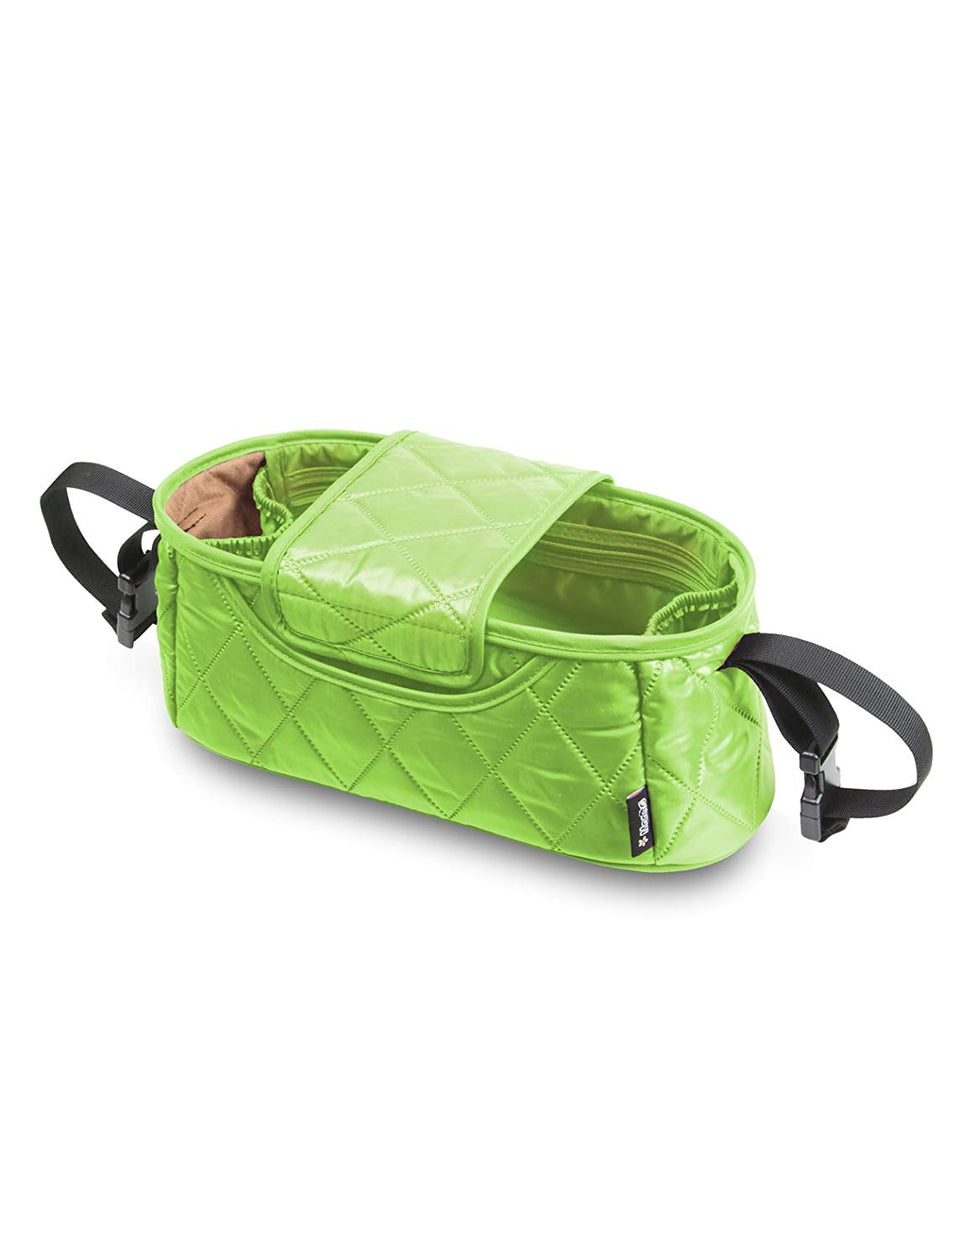 Handy Stroller Organizer (Green/Diamond)